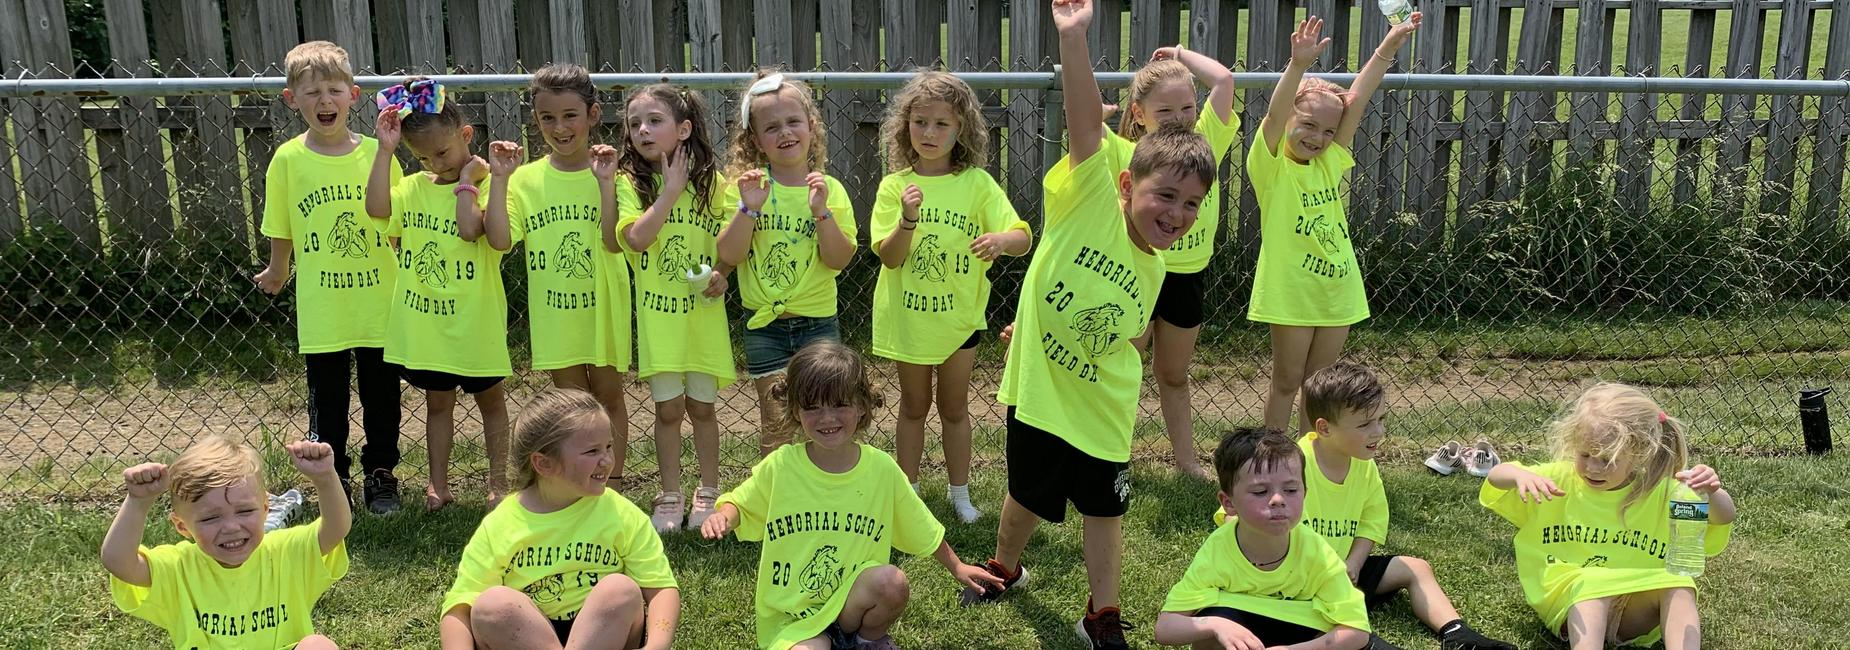 preschoolers celebrating Field Day